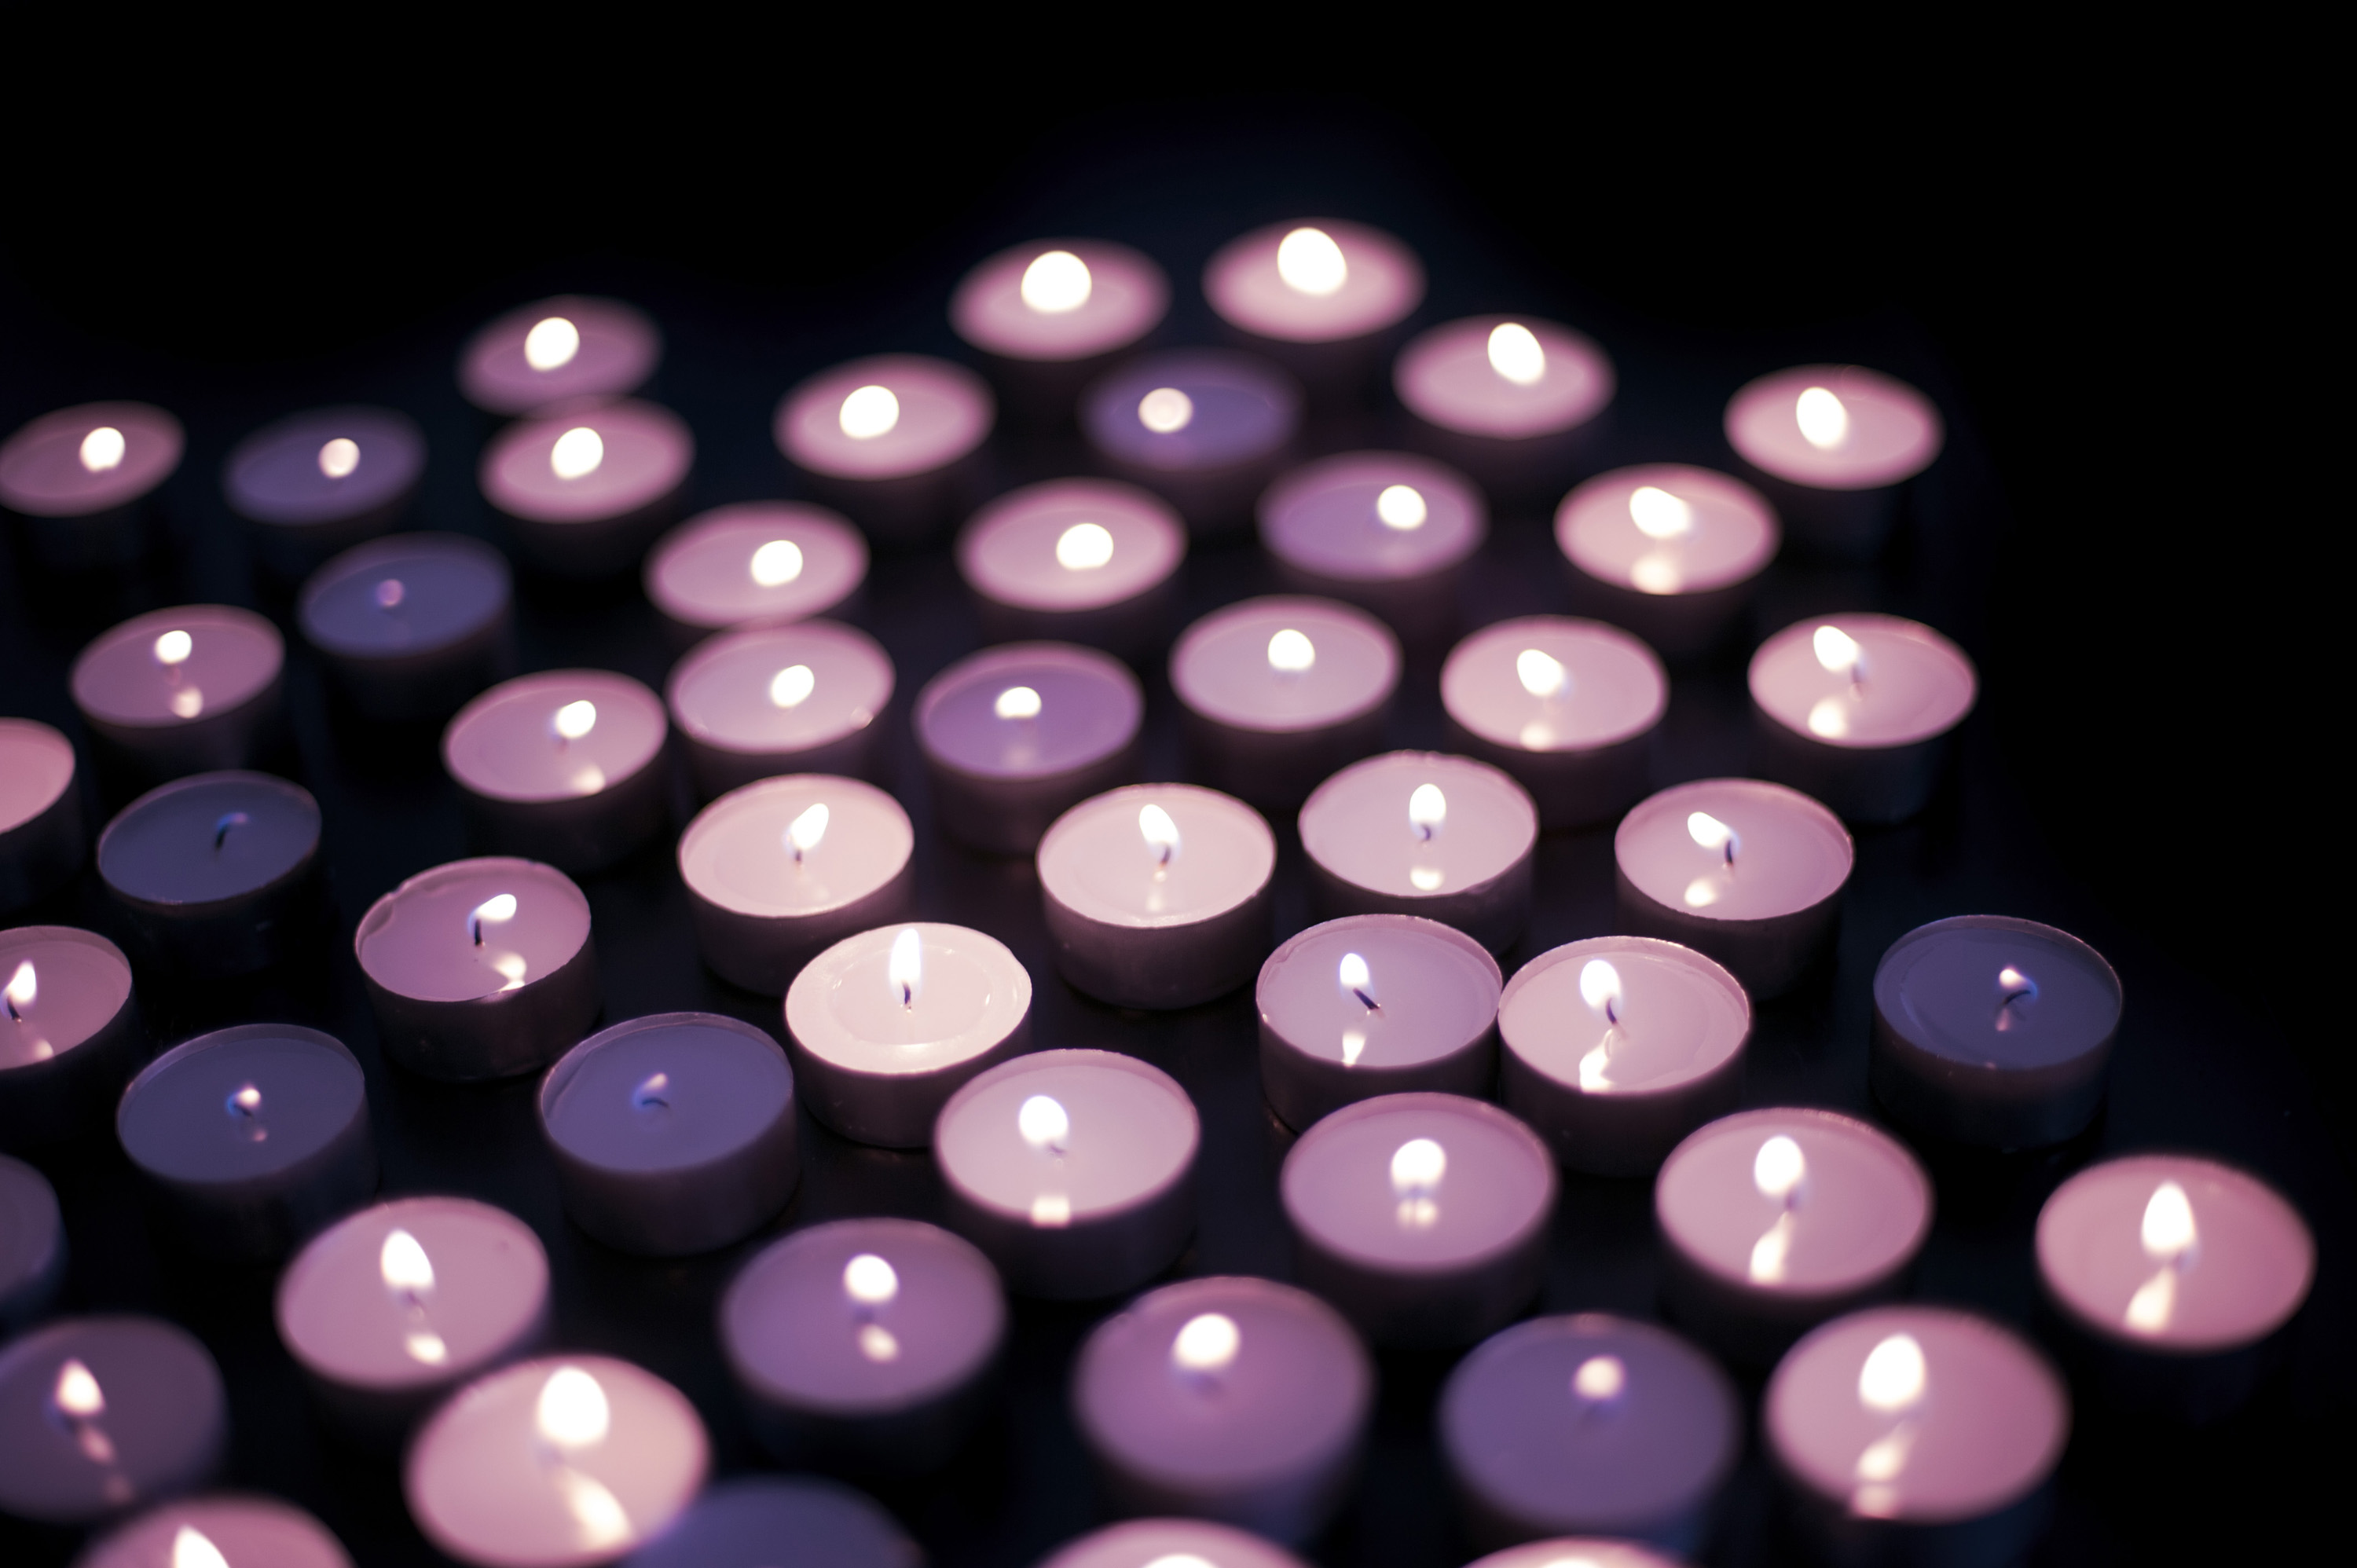 Photo of pink tinted candles free christmas images a large number of pink tinted candles burning in the darkness a symbol of hope buycottarizona Image collections